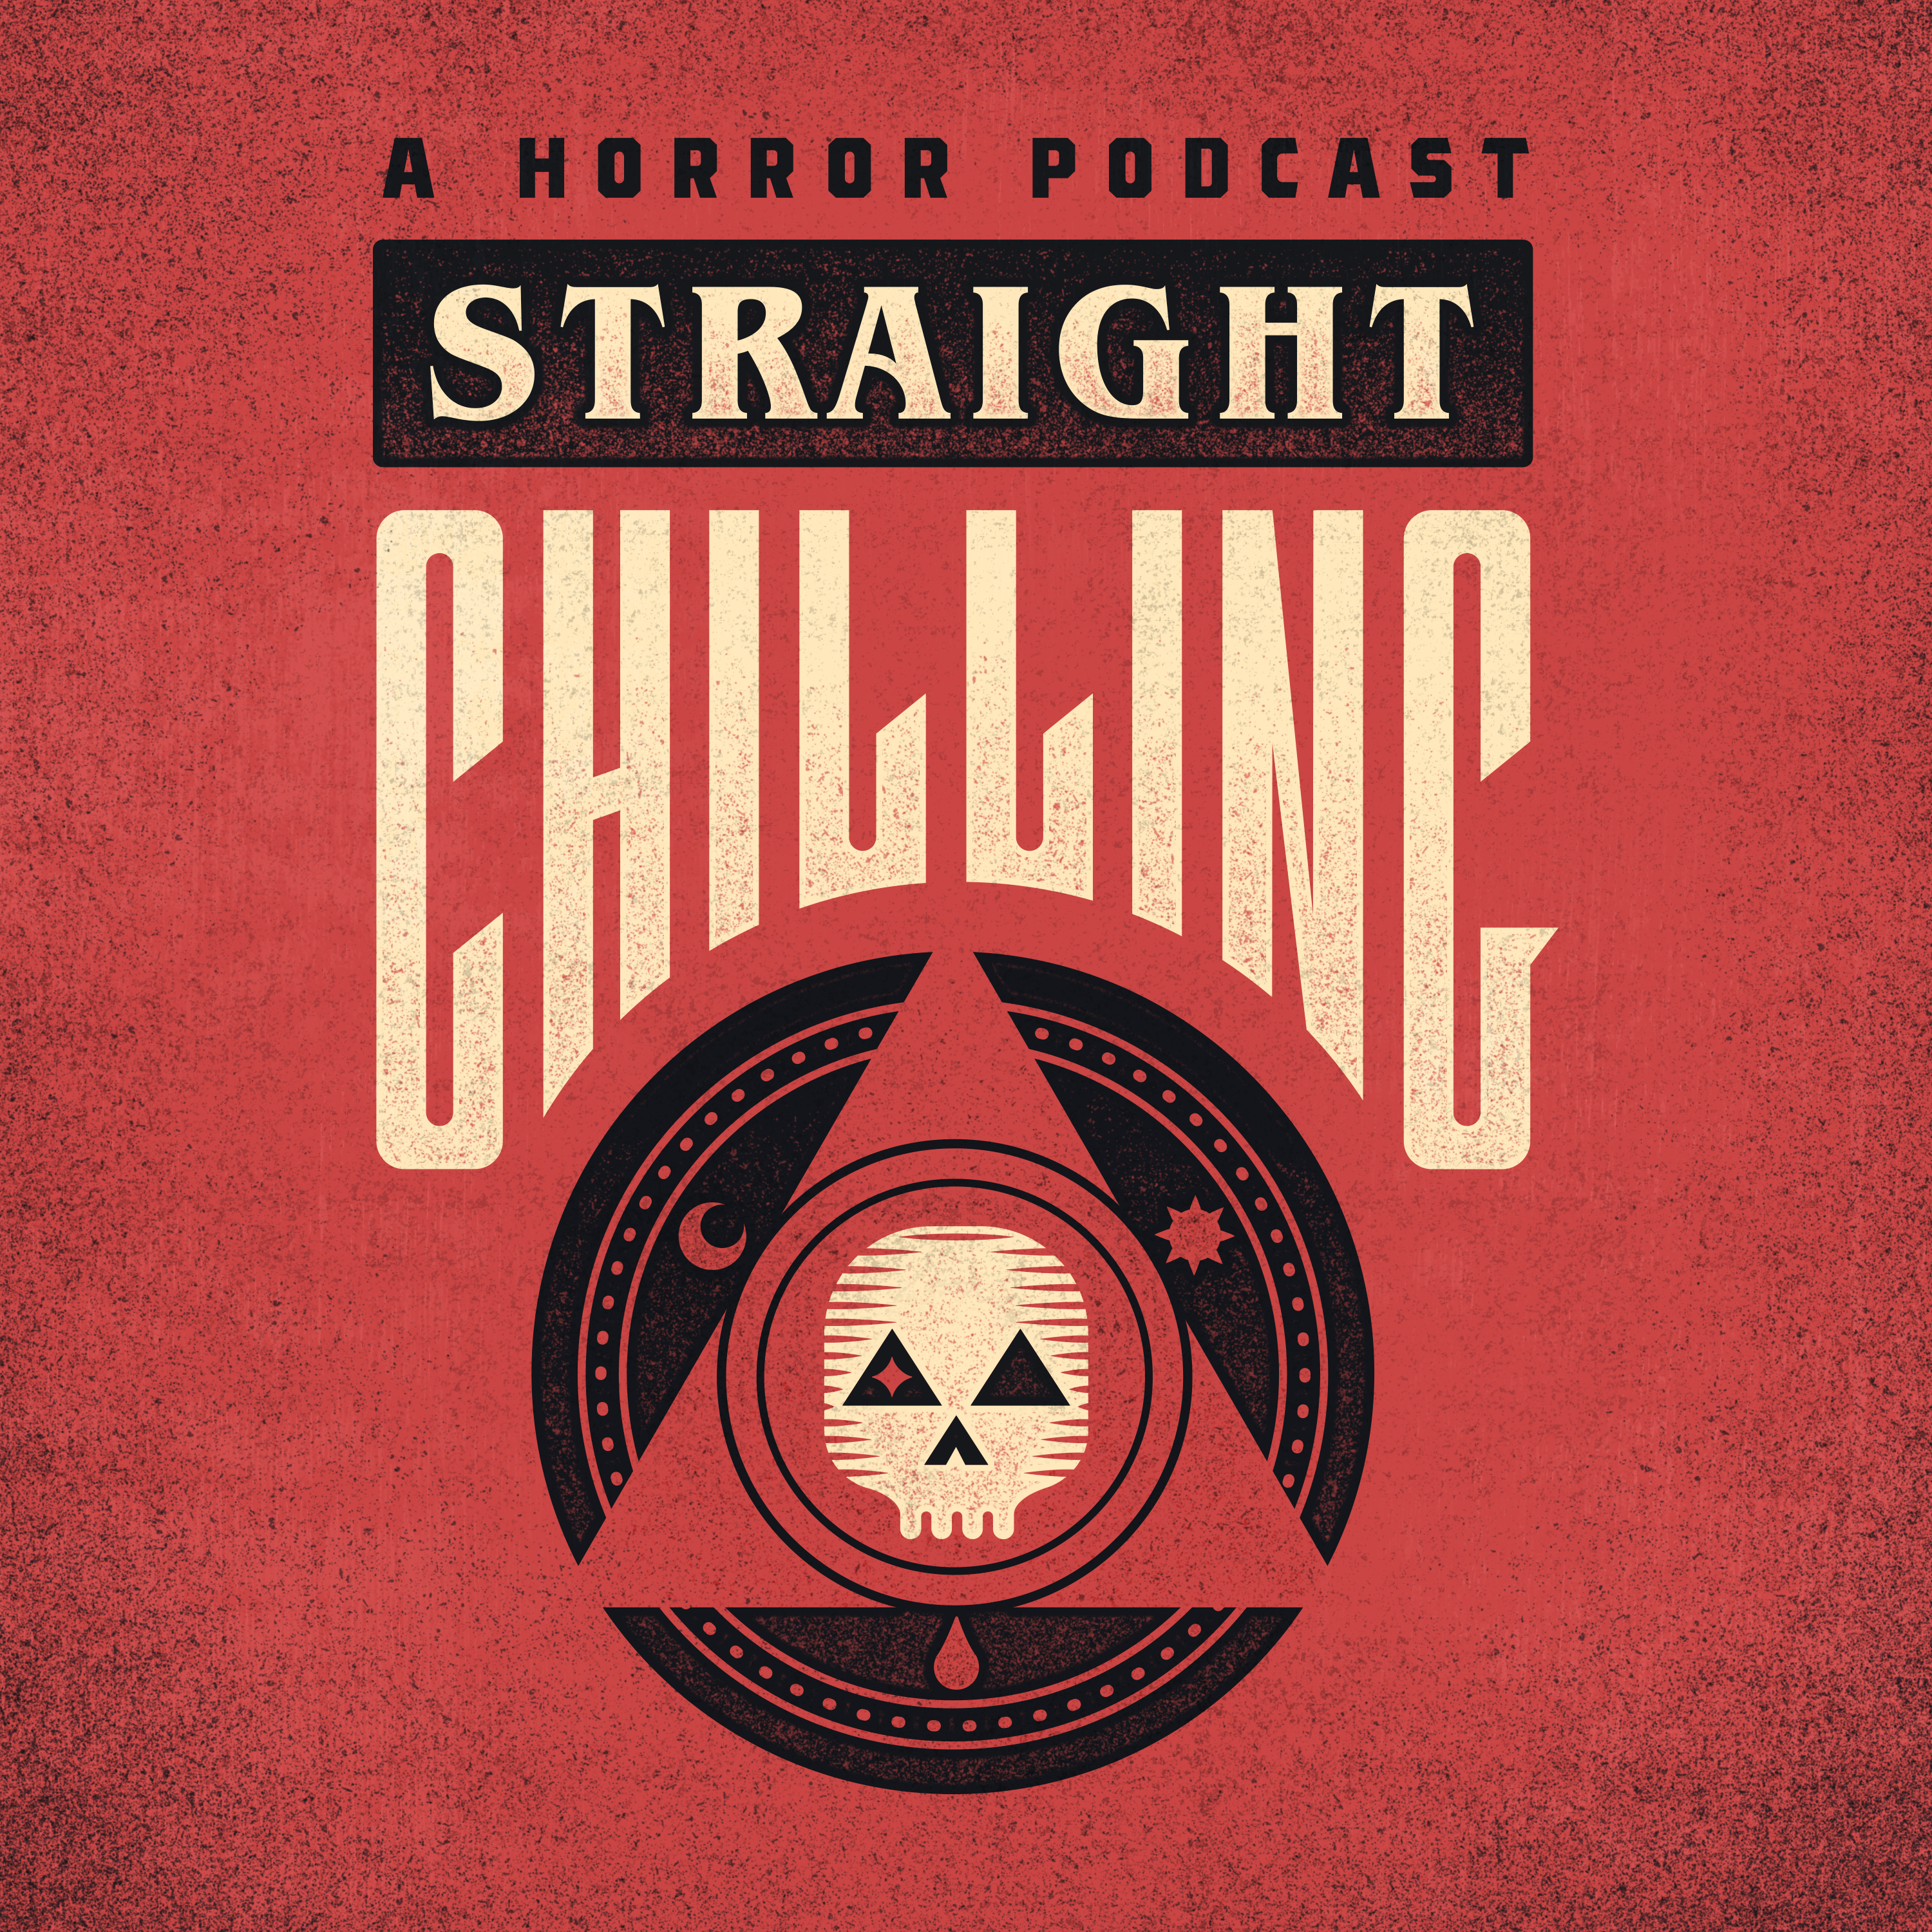 Straight Chilling: Horror Movie Review show art